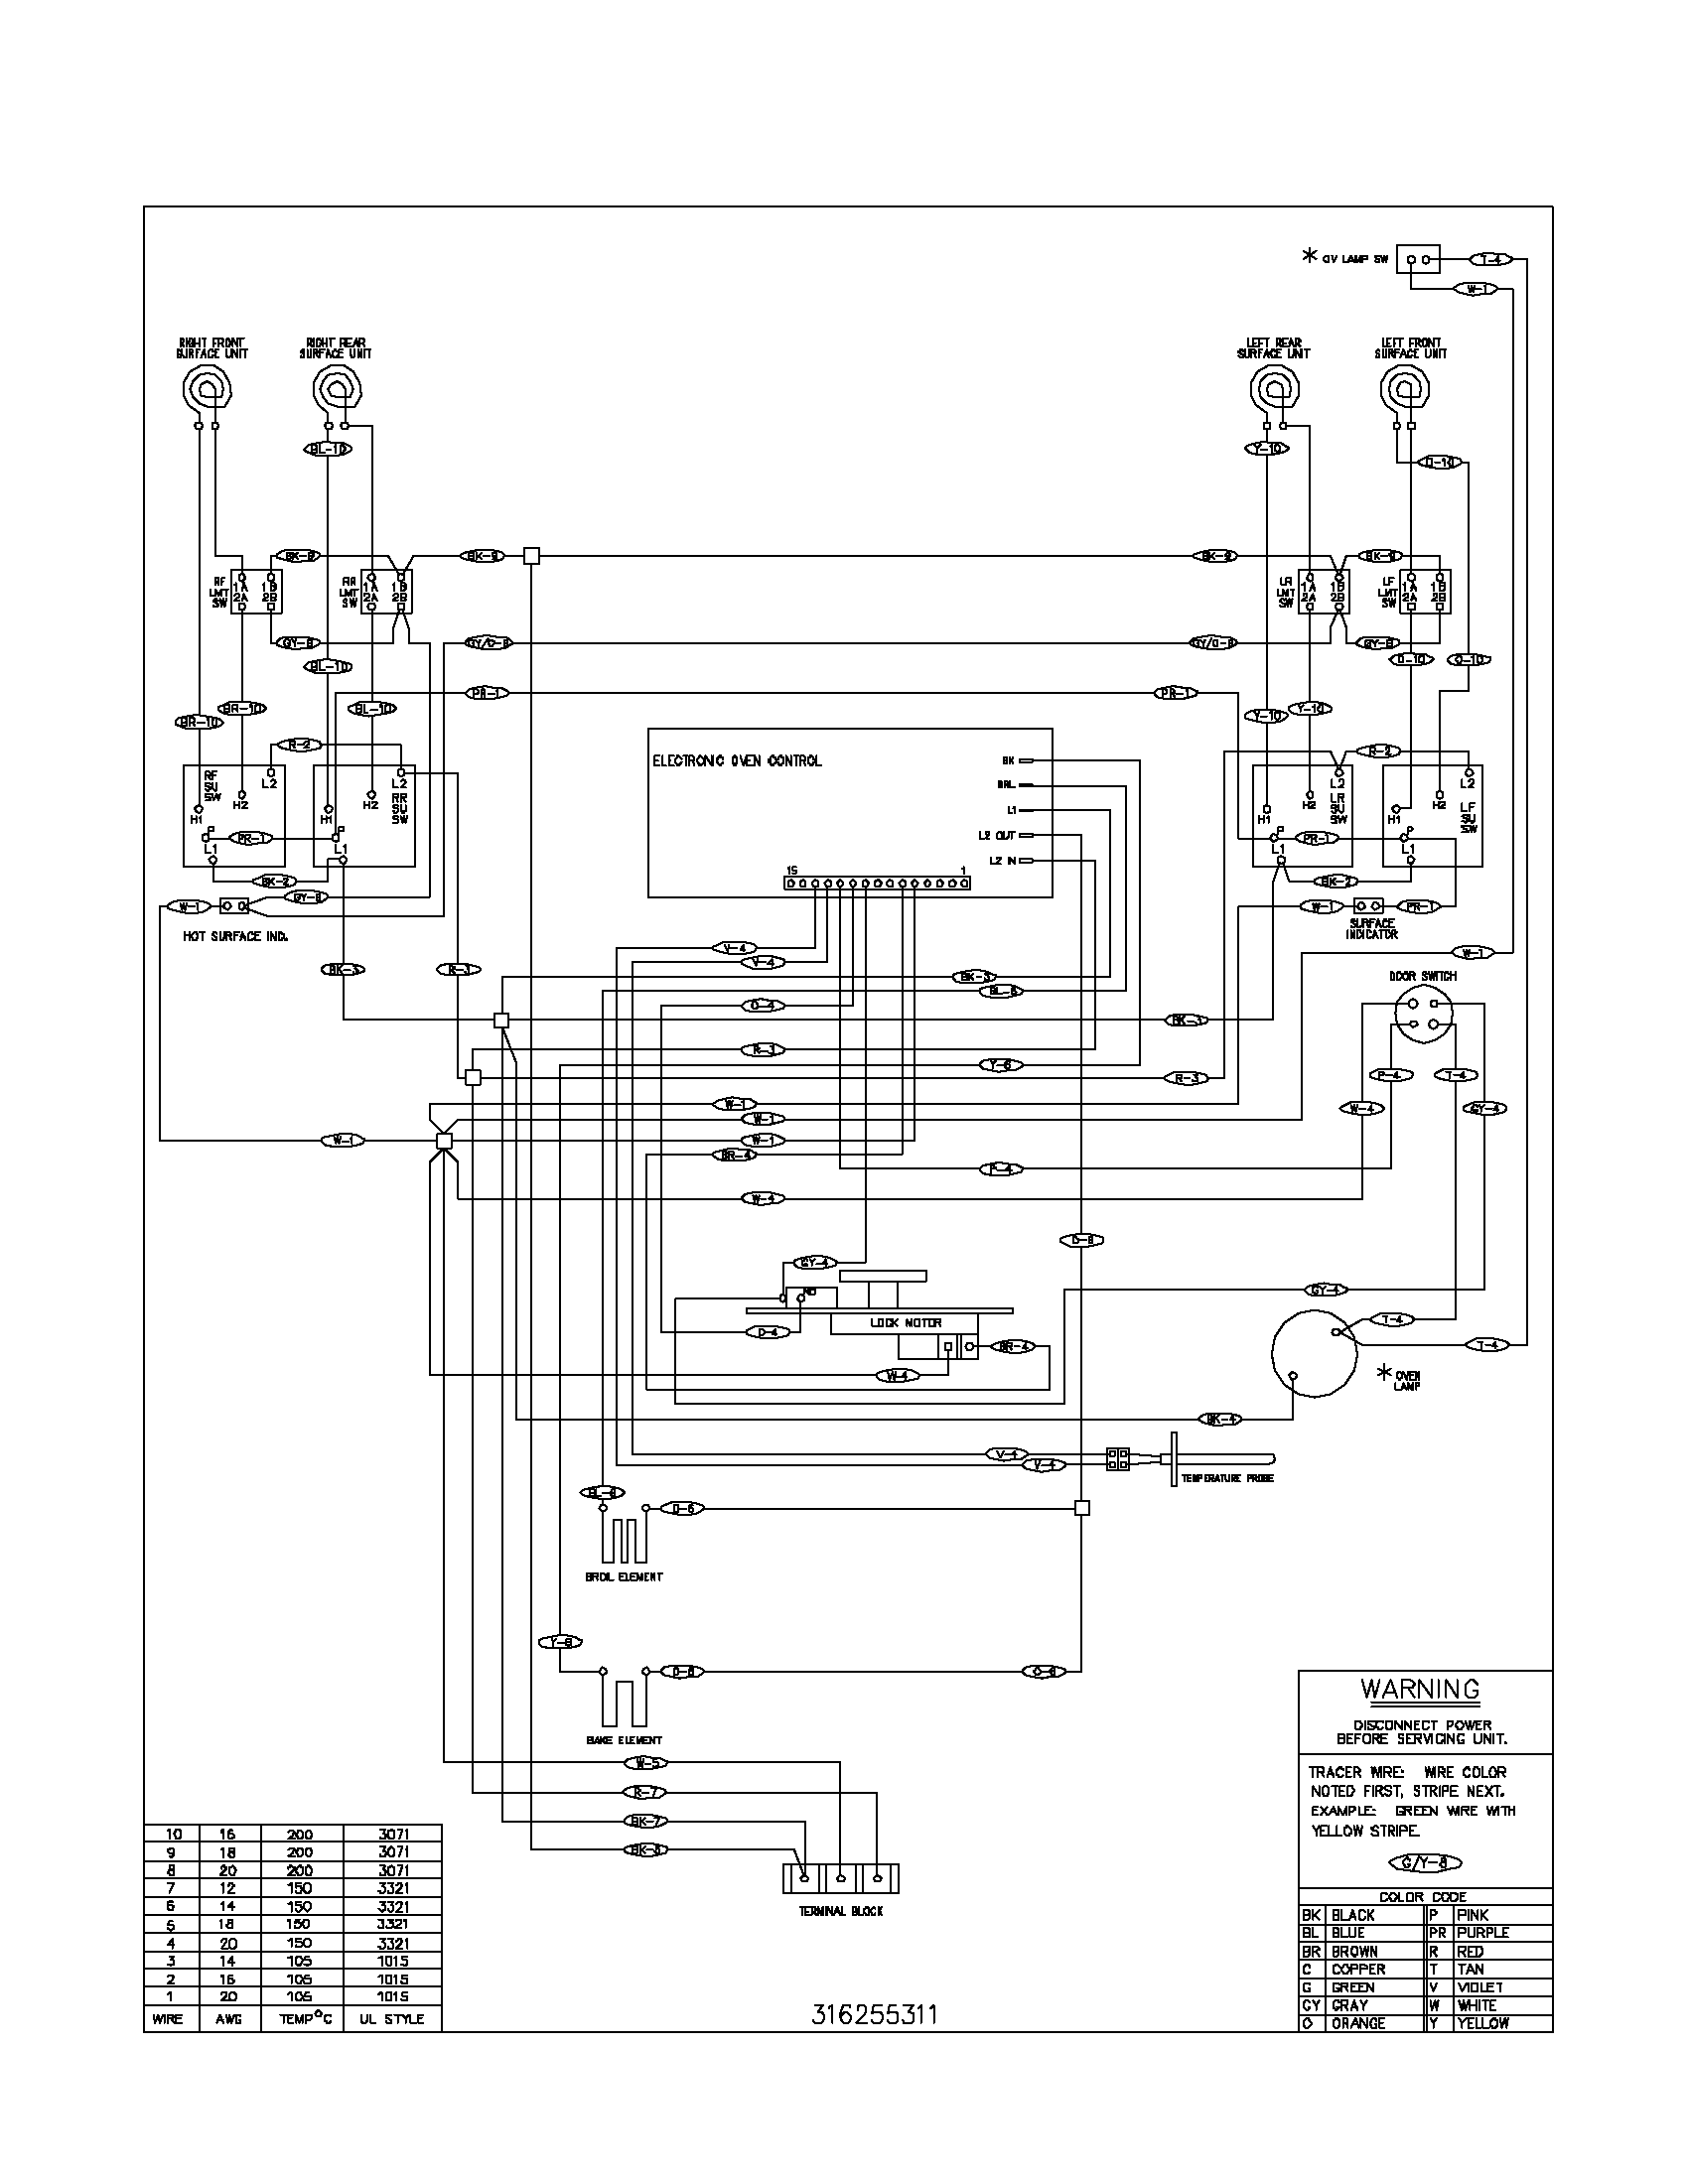 wiring diagram parts cooktop wiring diagram tappan tappan oven model number \u2022 wiring  at edmiracle.co